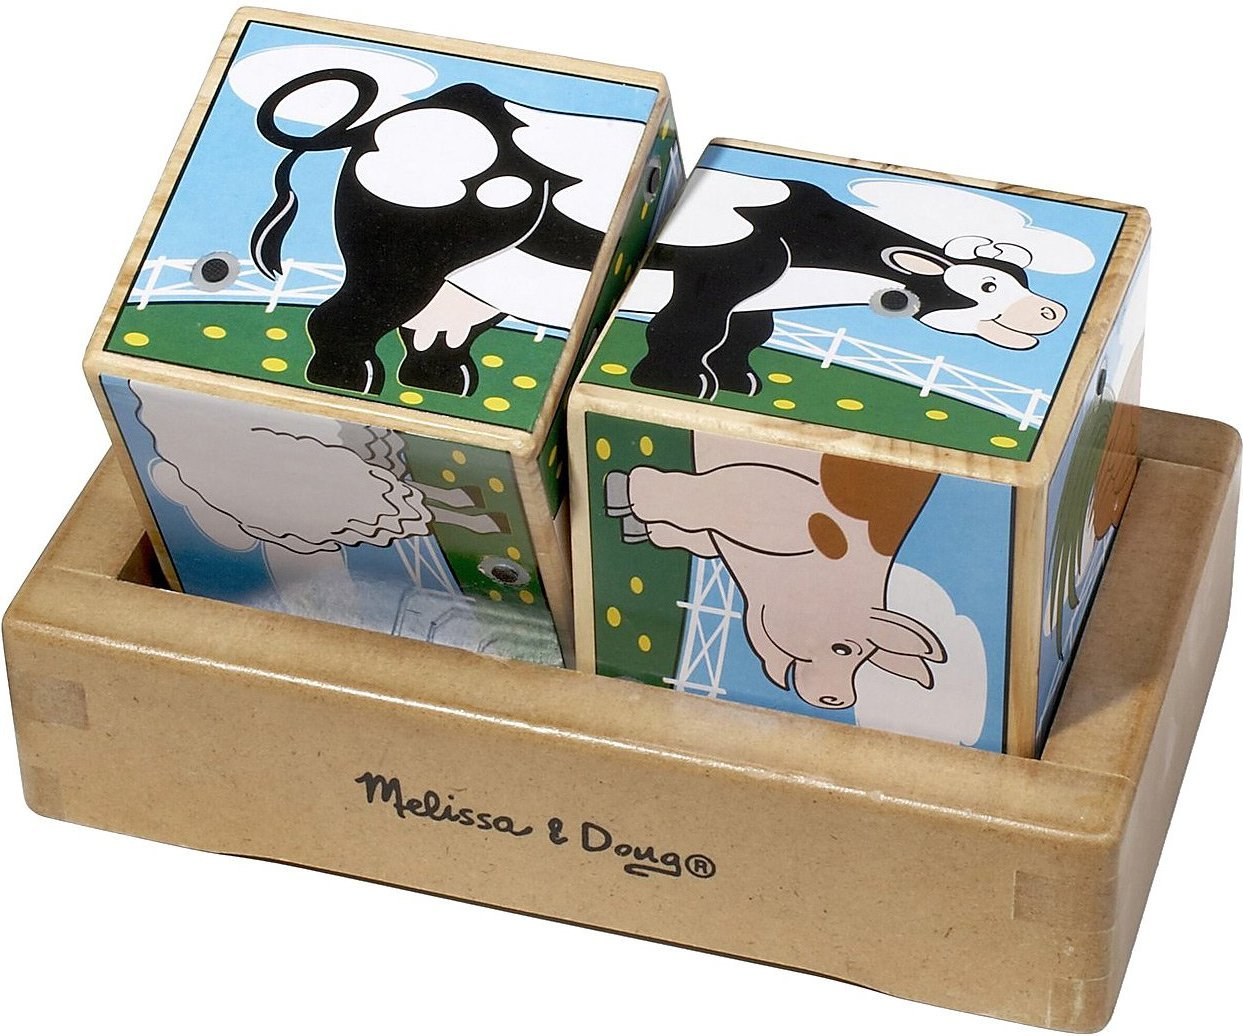 Melissa & Doug: Farm Sound Blocks image